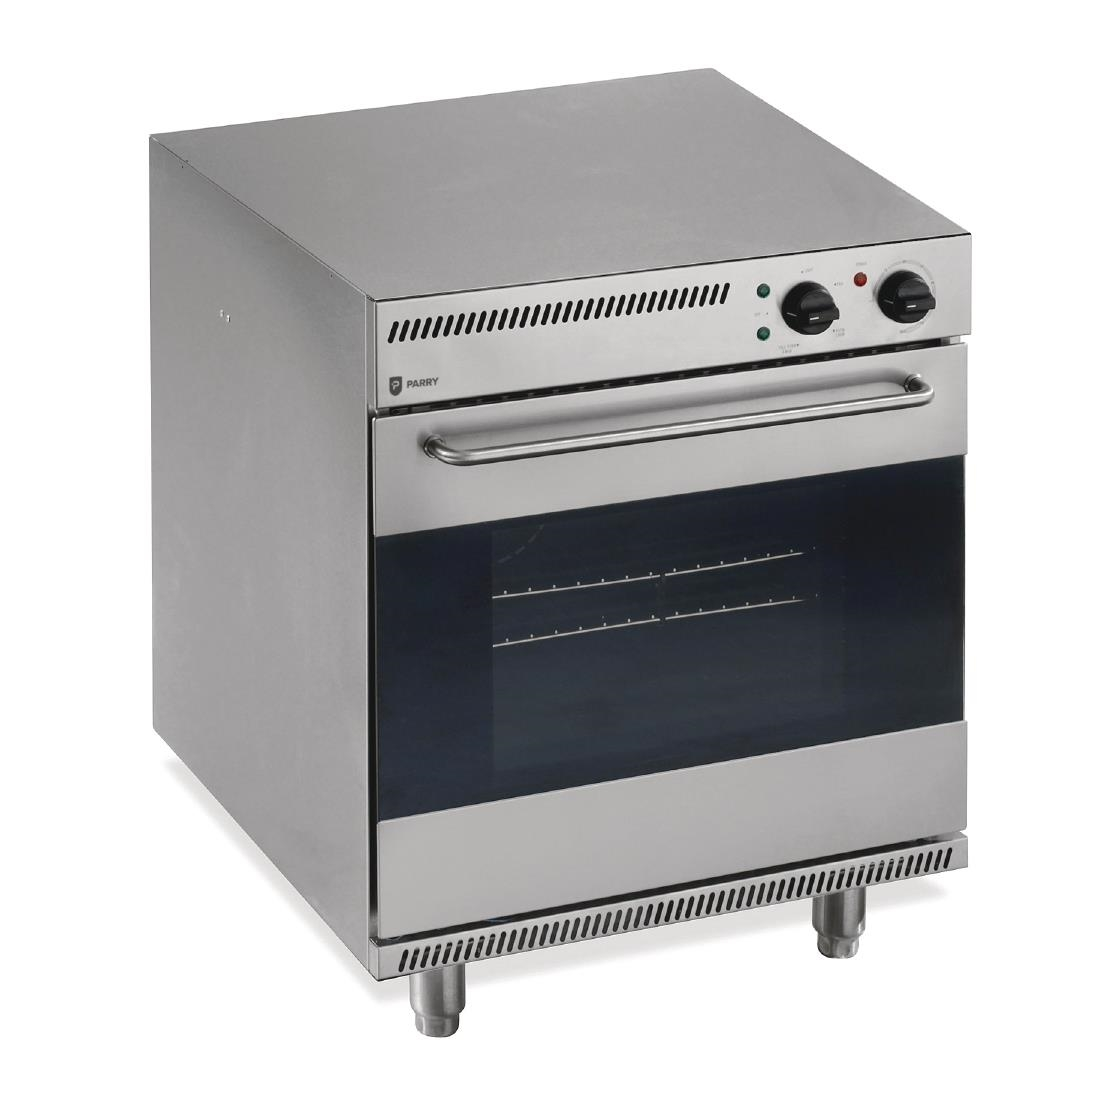 Parry Electric Oven NPEO